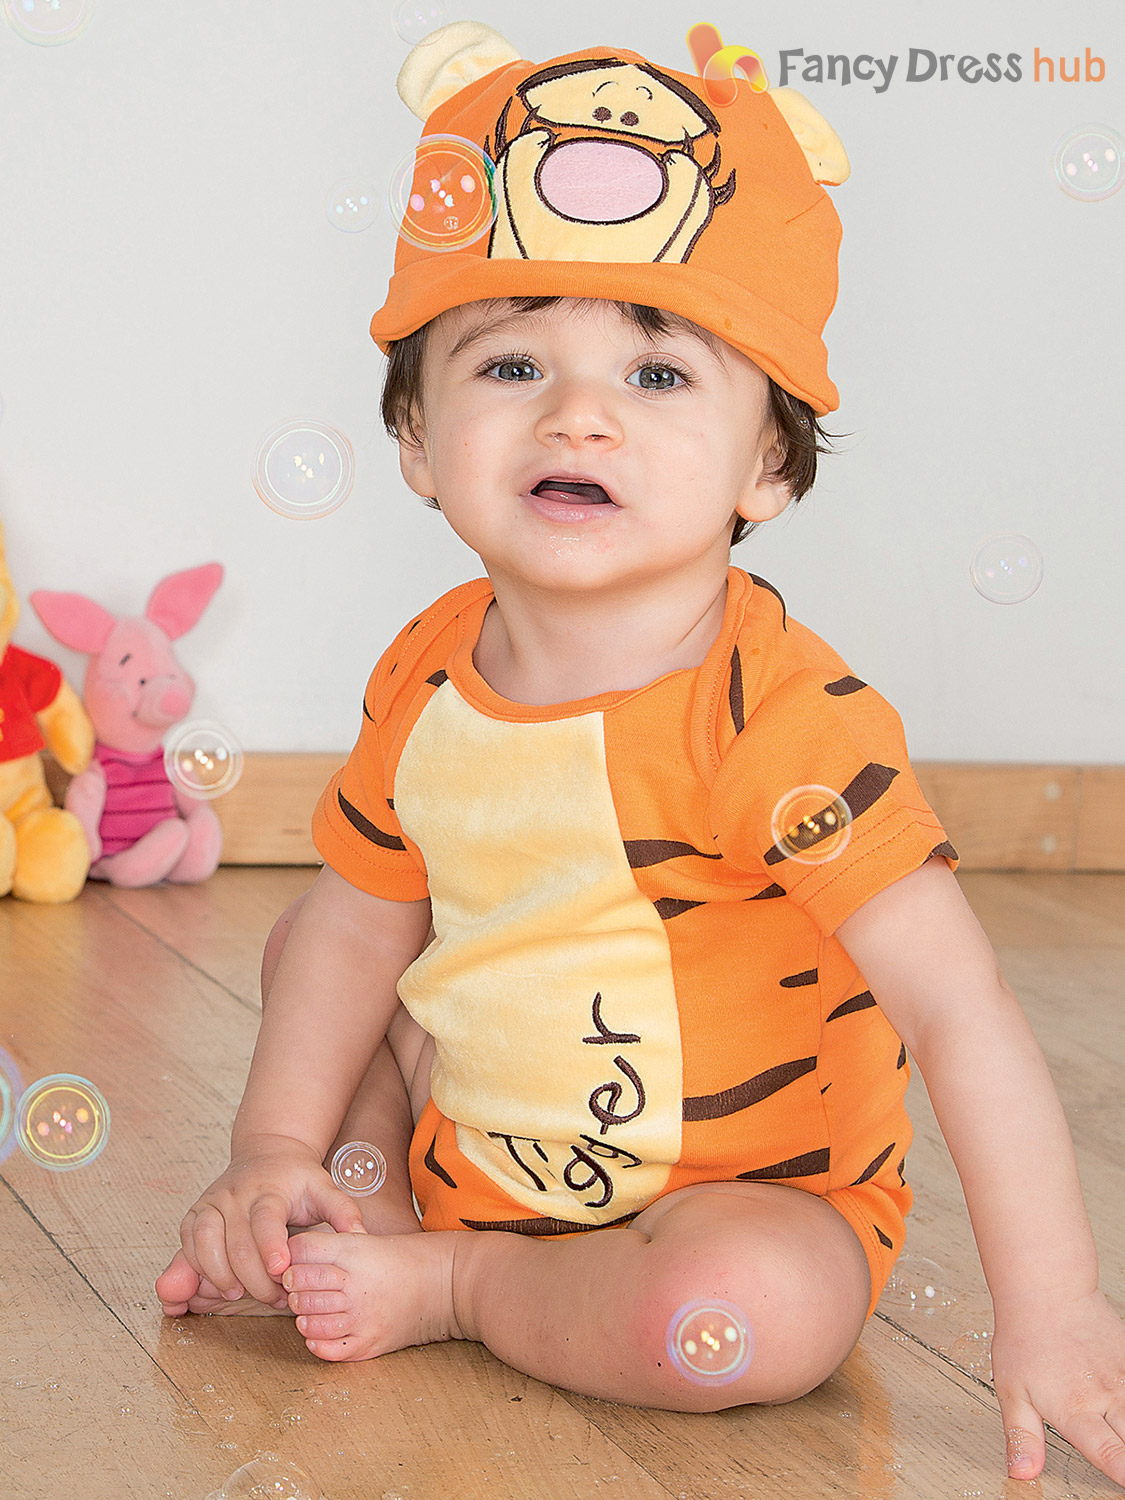 Disney-Baby-Winnie-the-Pooh-Bodysuit-Hood-Outfit-Toddler-Fancy-Dress-Costume thumbnail 3